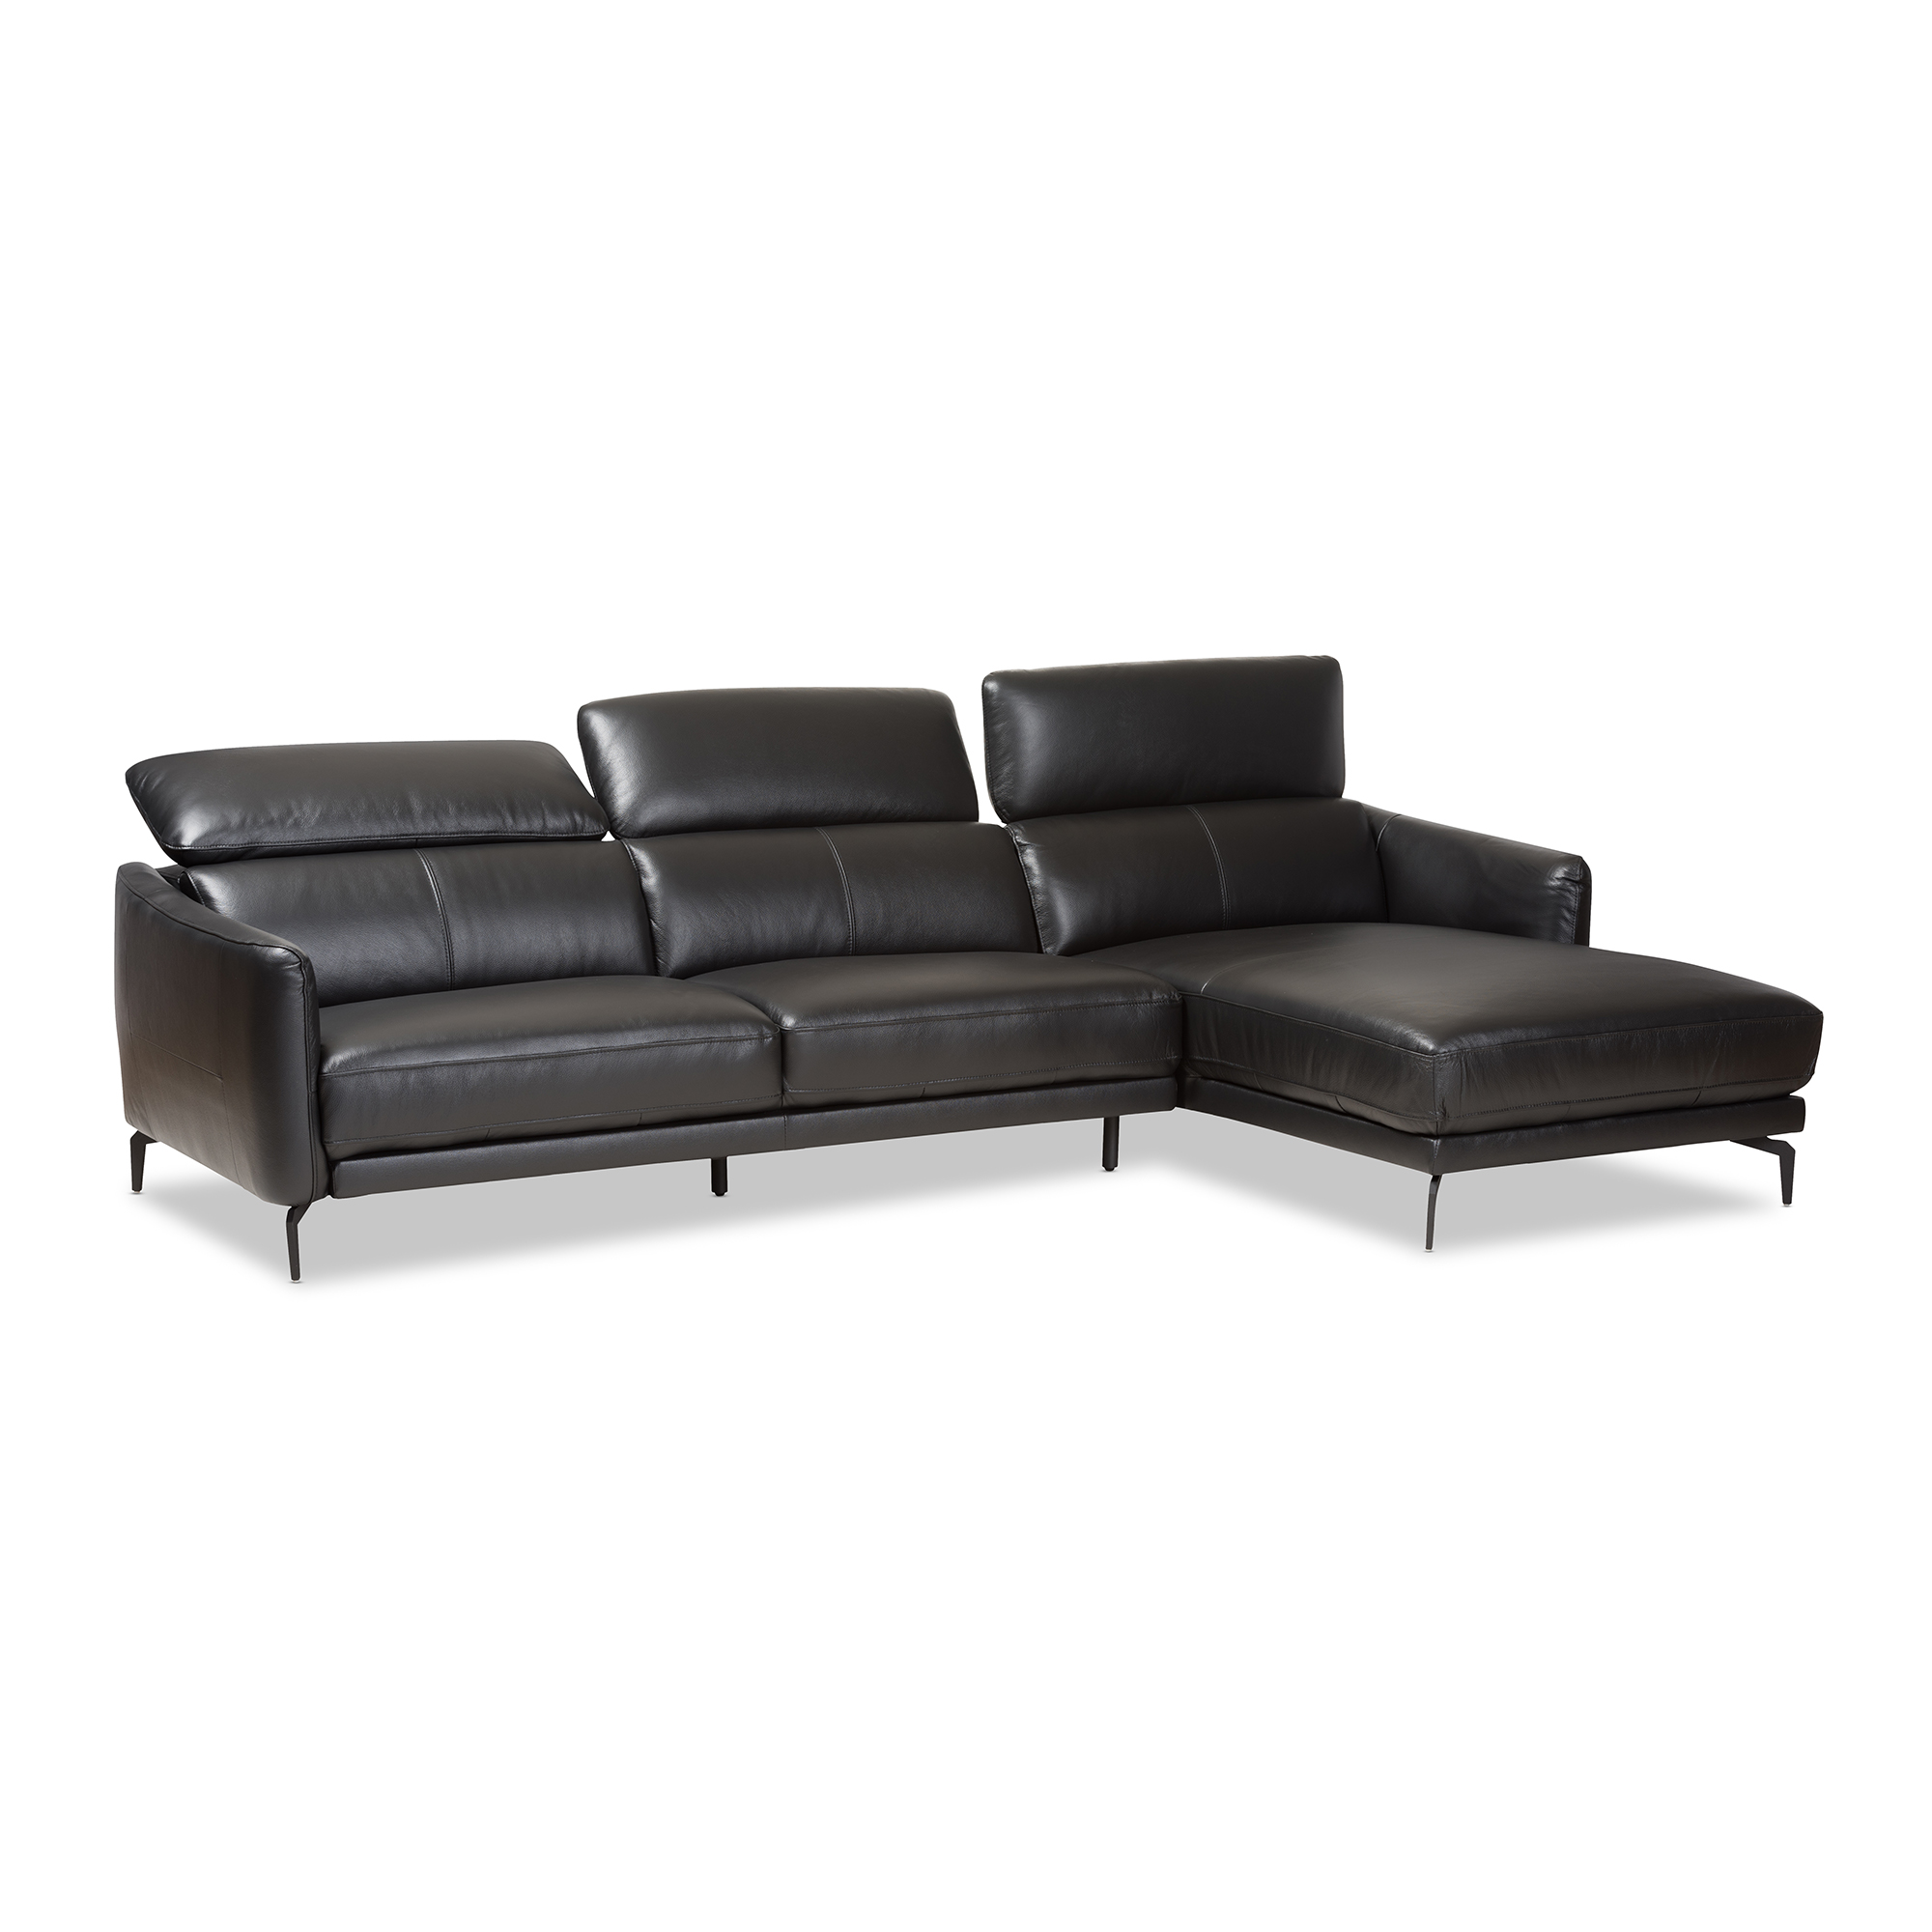 ... Baxton Studio Paige Modern and Contemporary Black Leather Right Facing Chaise 2-Piece Sectional Sofa ...  sc 1 st  Baxton Studio Outlet : 2 piece sectional sofa with chaise - Sectionals, Sofas & Couches